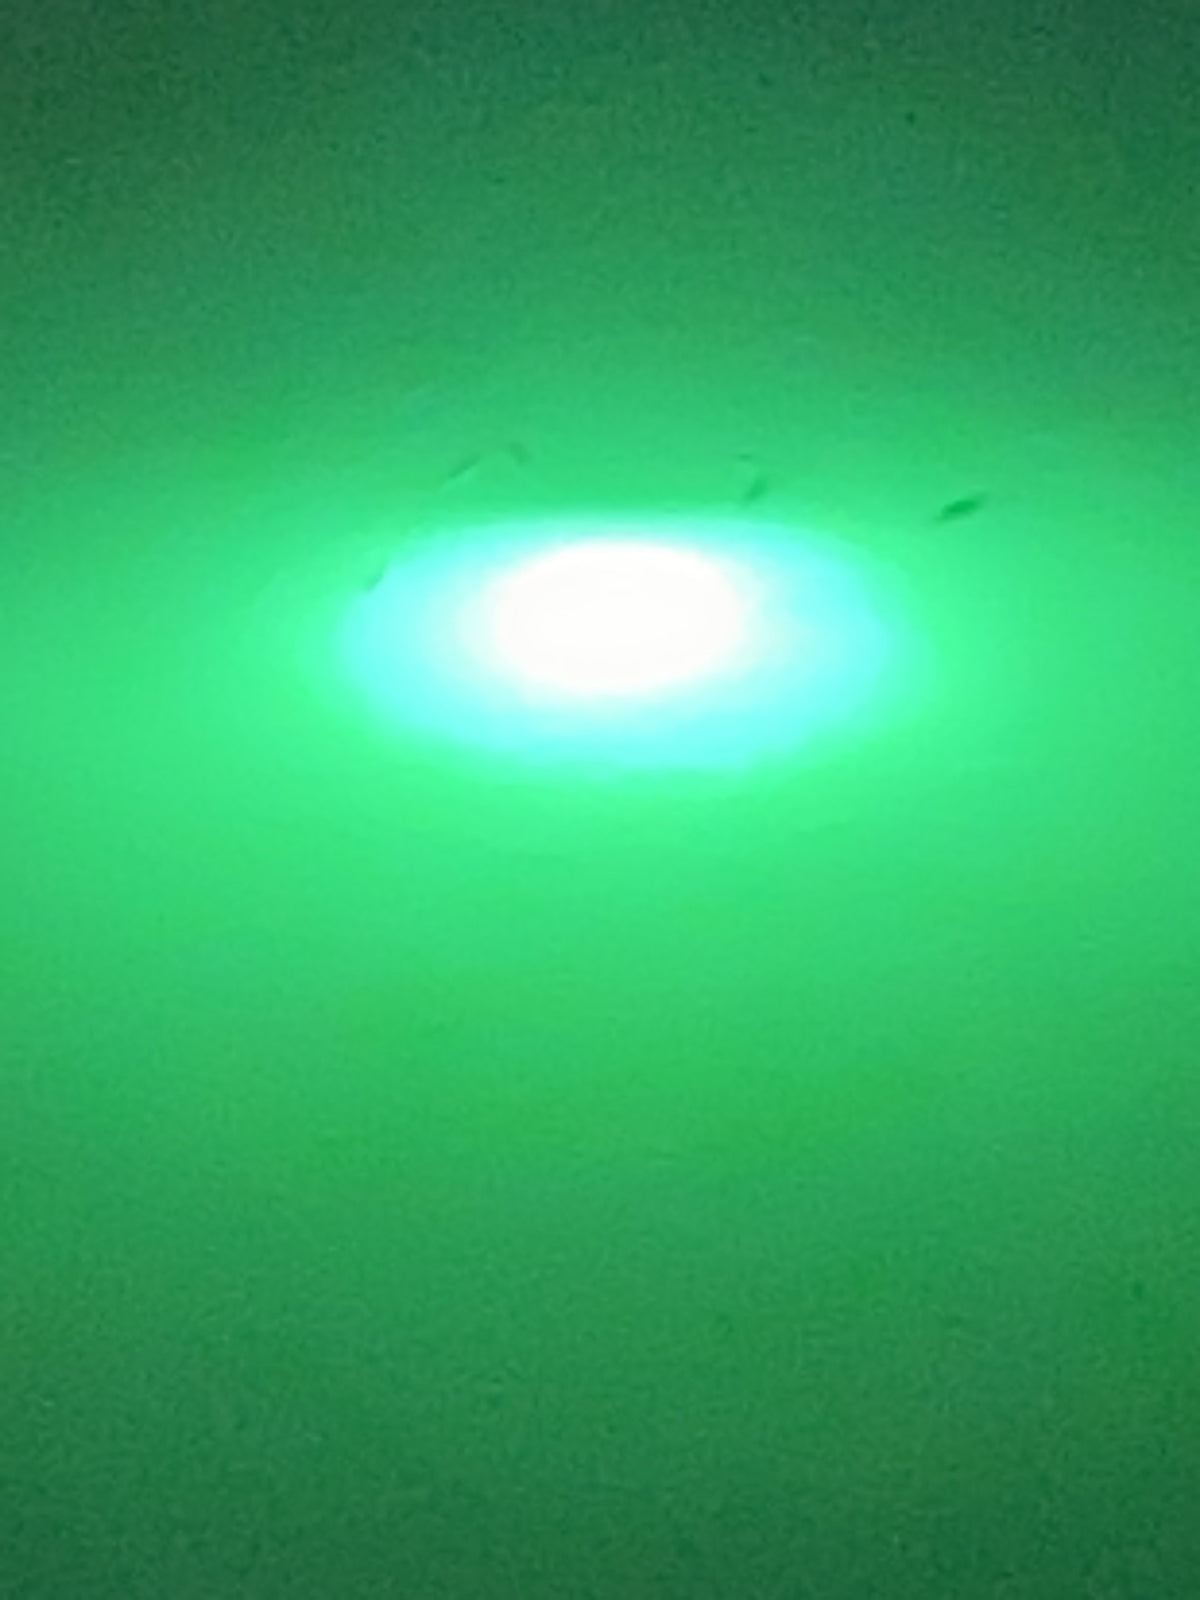 Green Blob Underwater Fishing Light 15000 Lumen with Alligator Clips and Cigarette Lighter adapter with 30ft Cord Fishing Lights Green Blob Outdoors